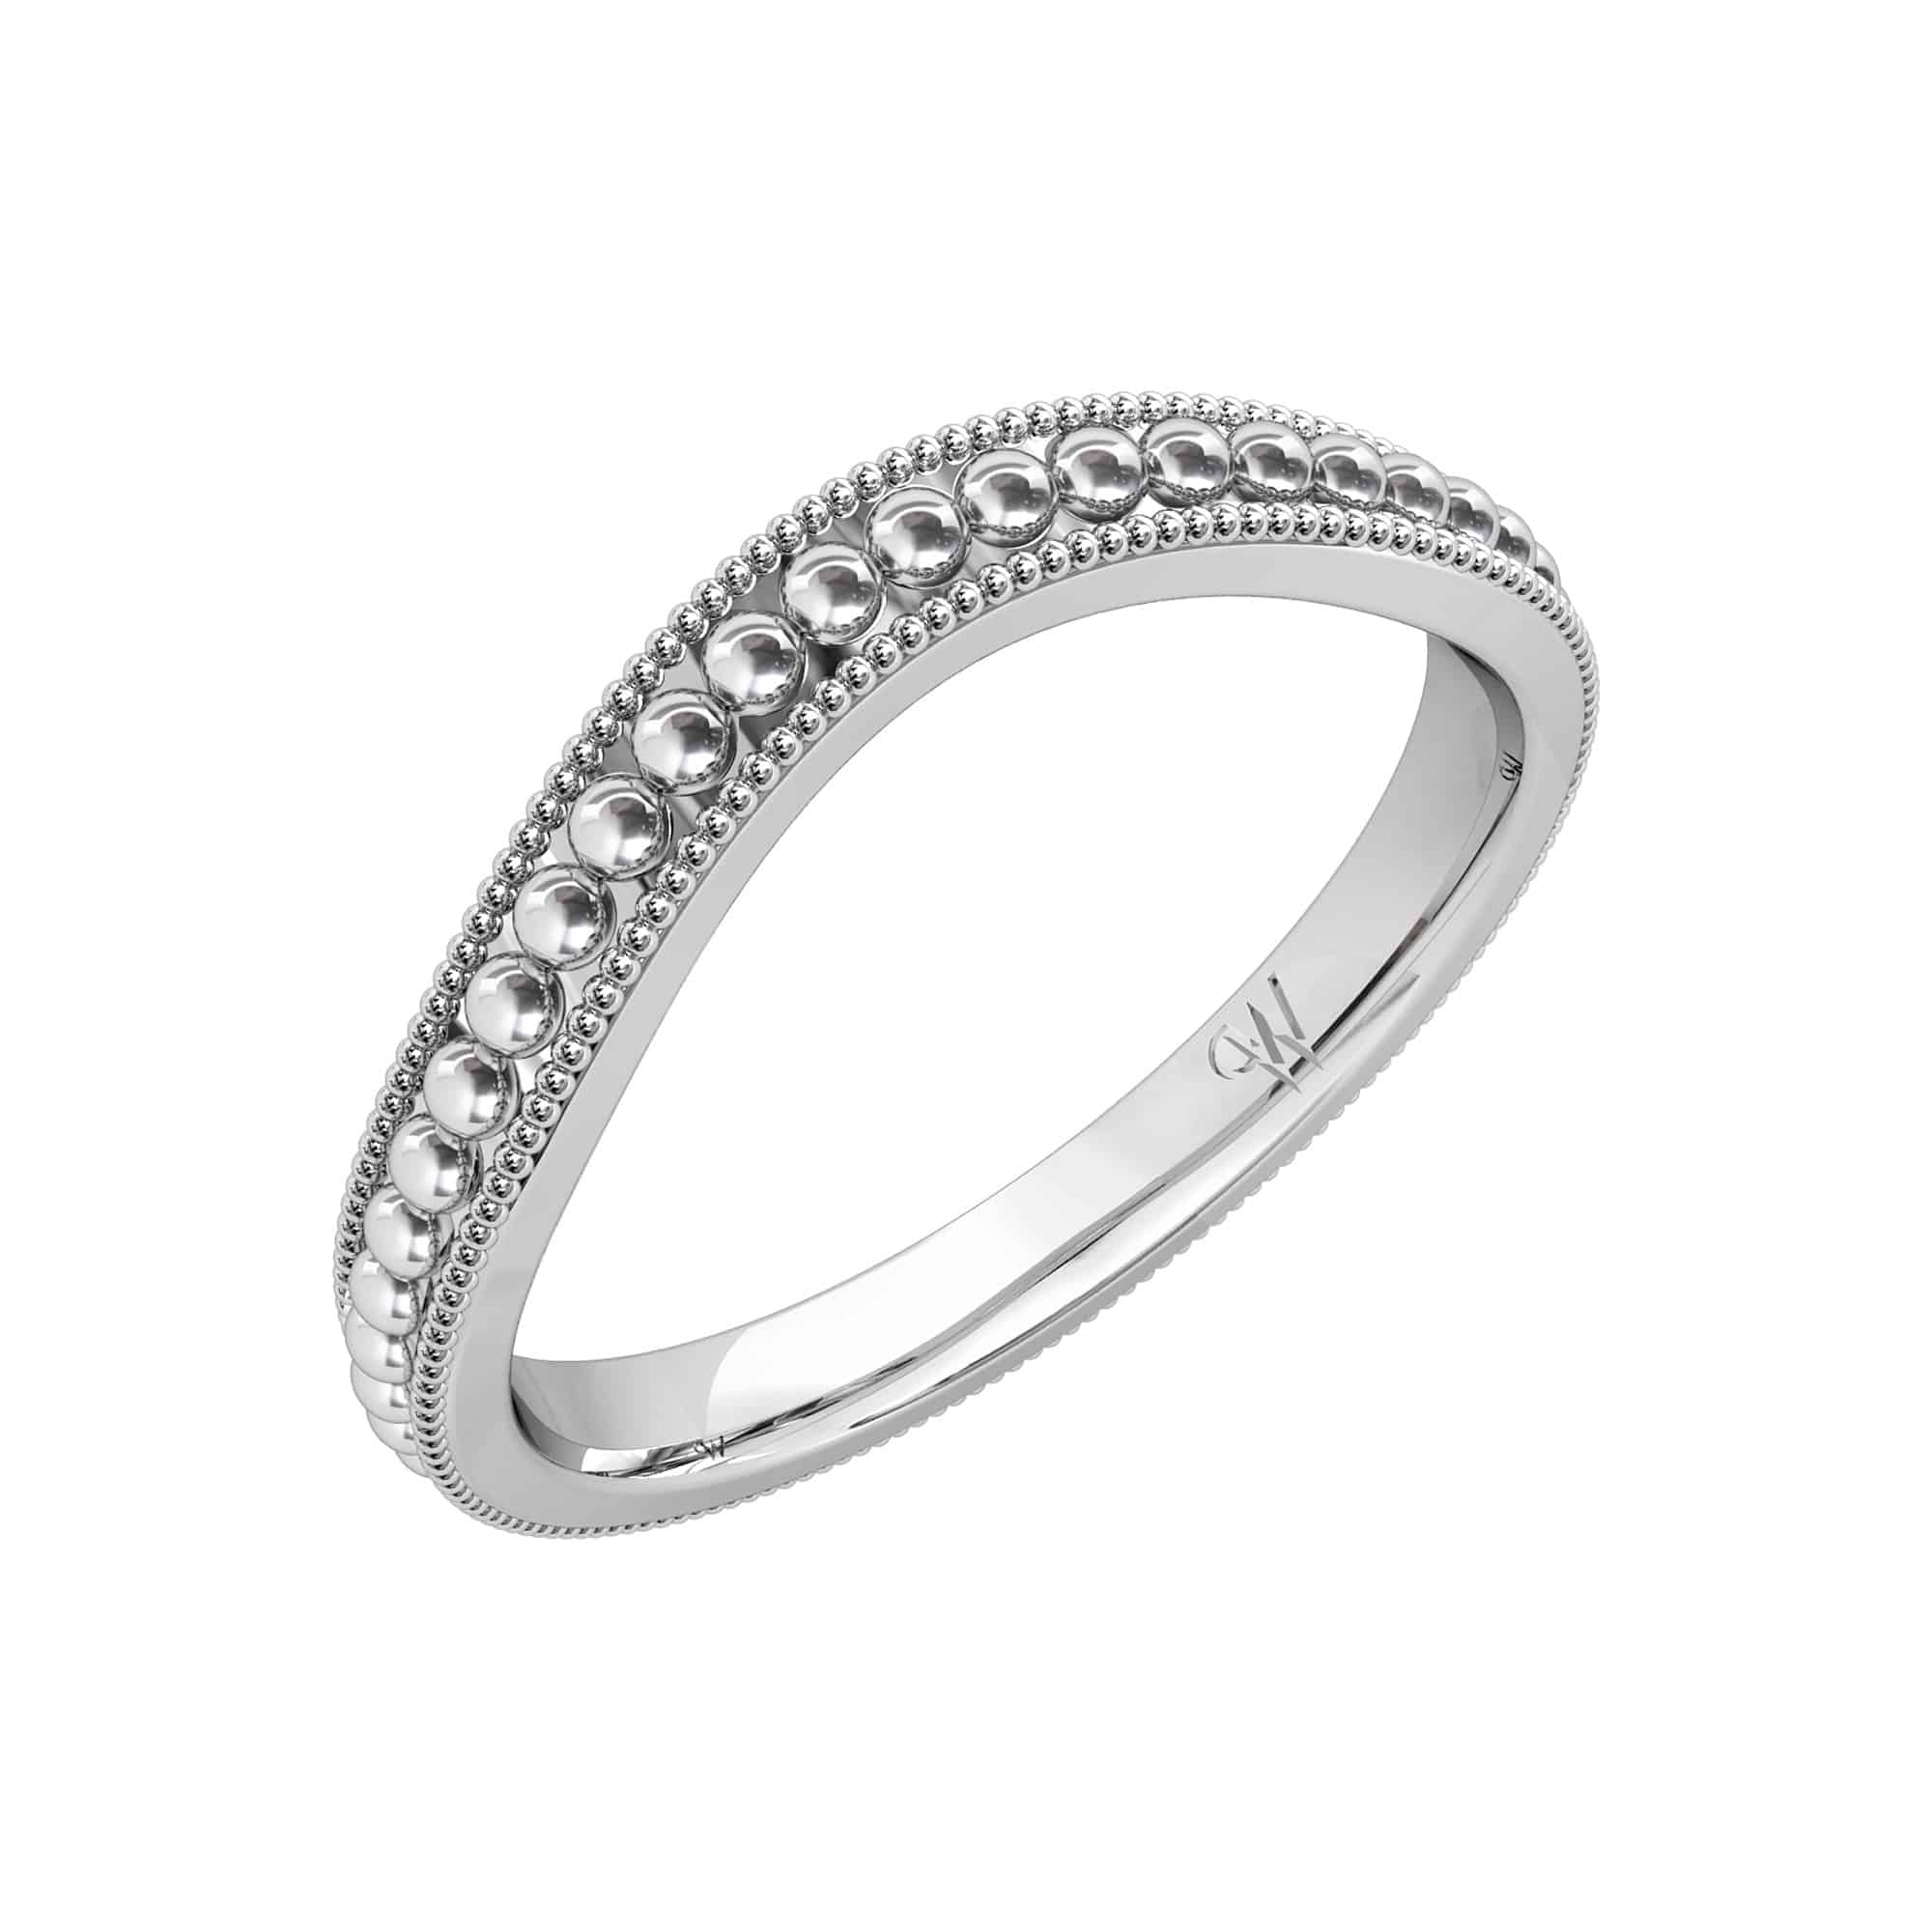 Art Deco Style Patterned Wedding Ring